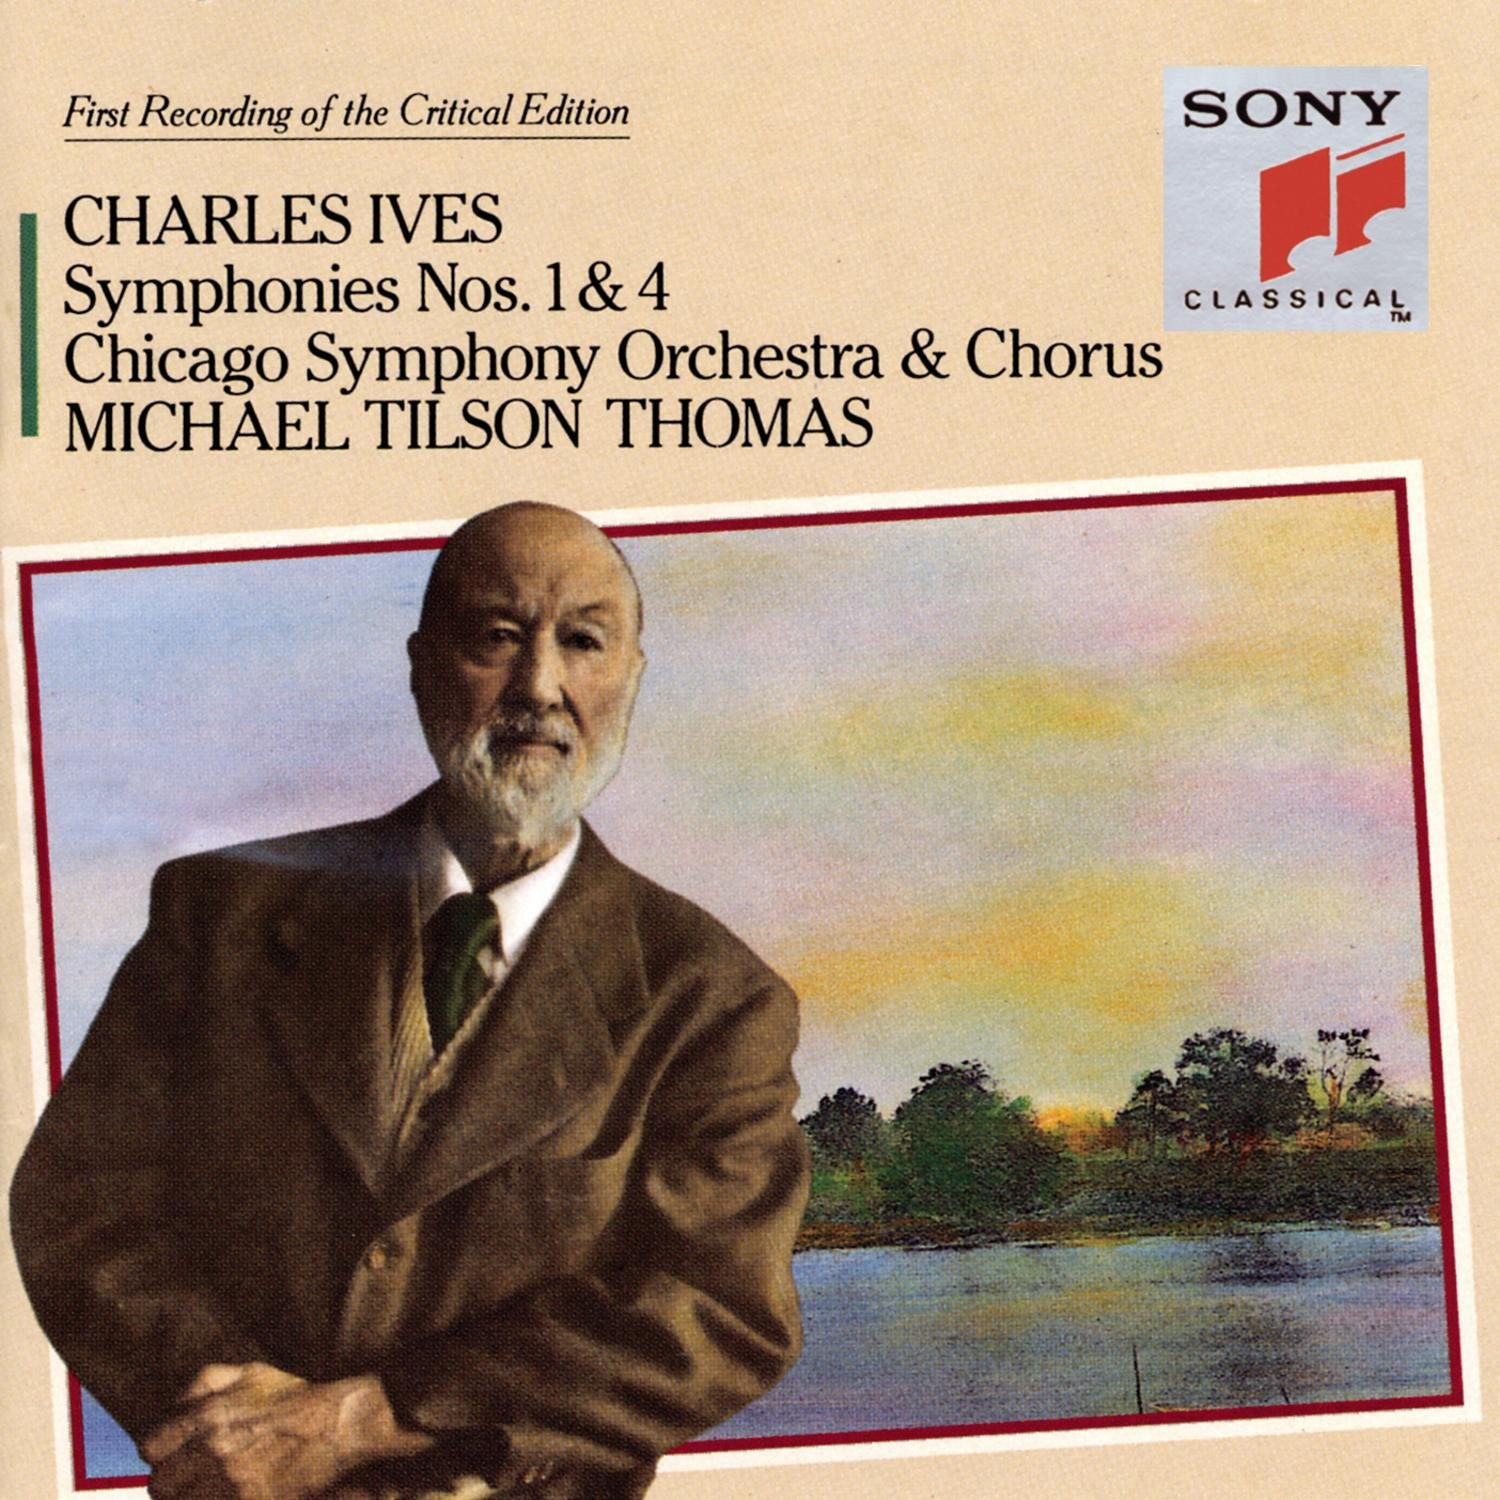 Charles Ives: Symphonies Nos. 1 & 4 / Hymns by Sony Classical